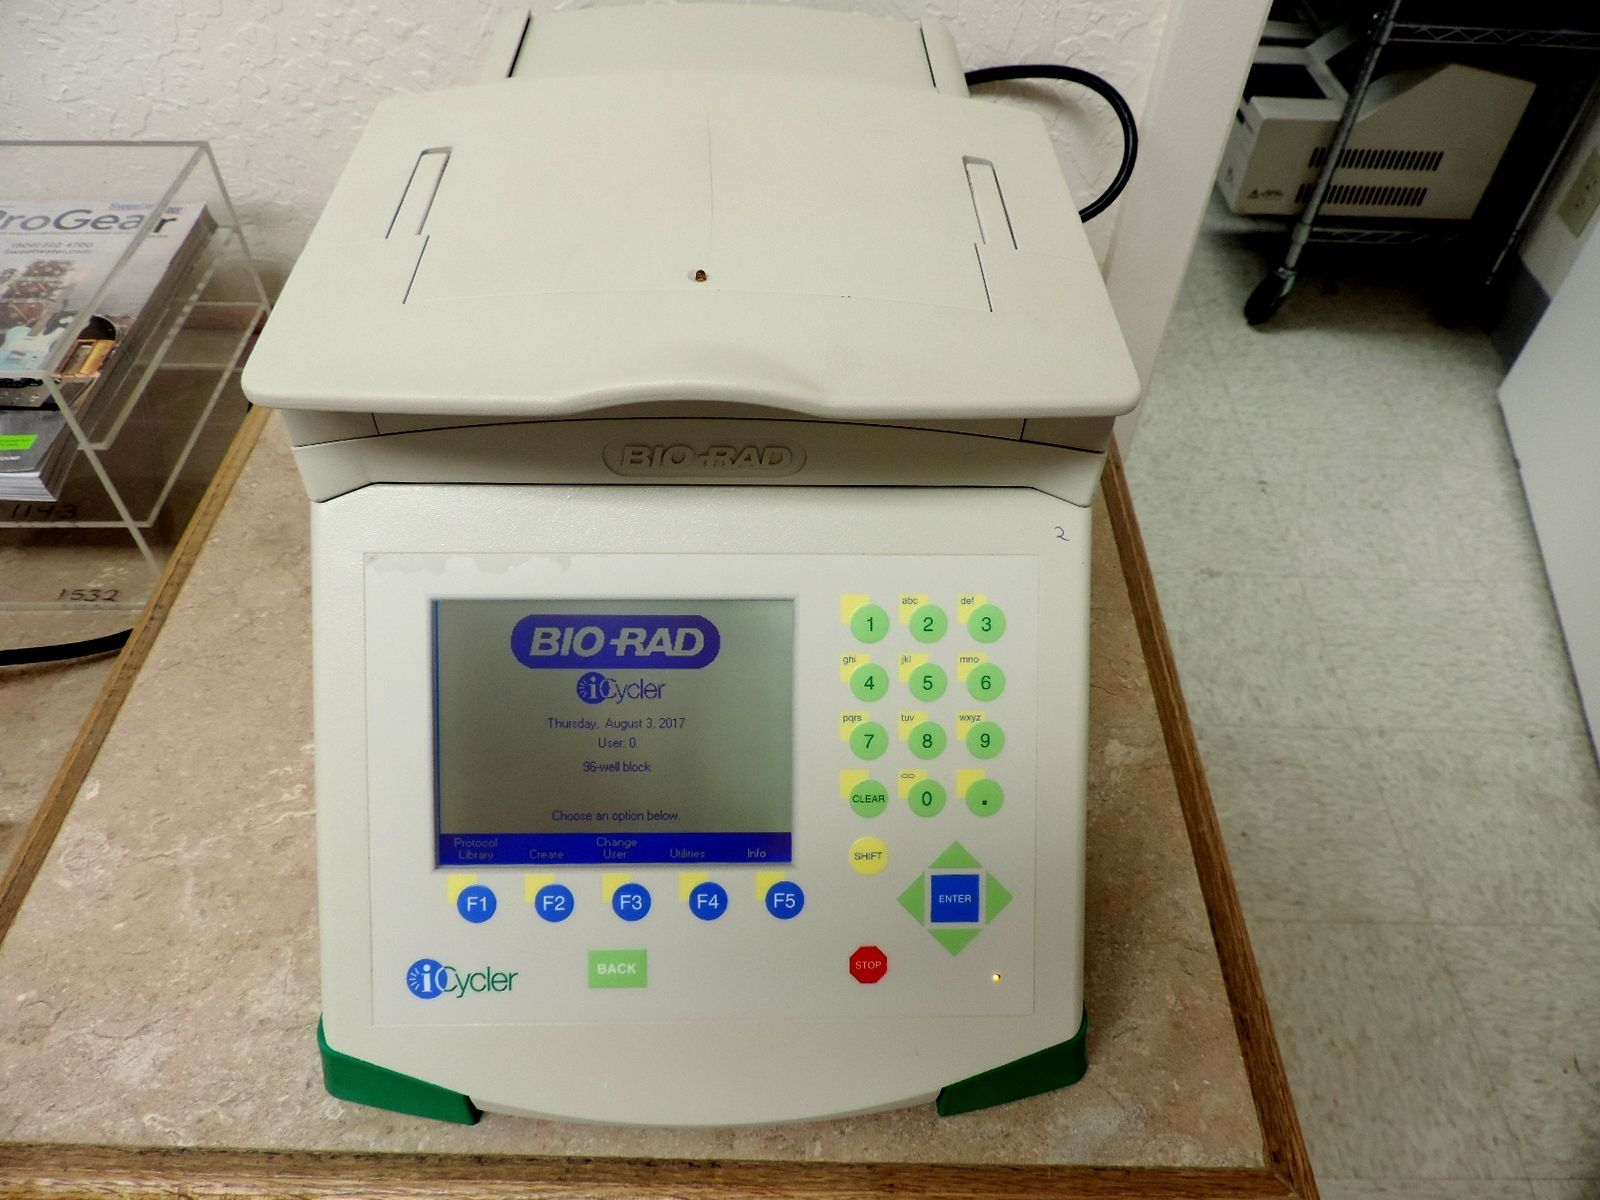 BioRad I-Cycler PCR Thermal Cycler